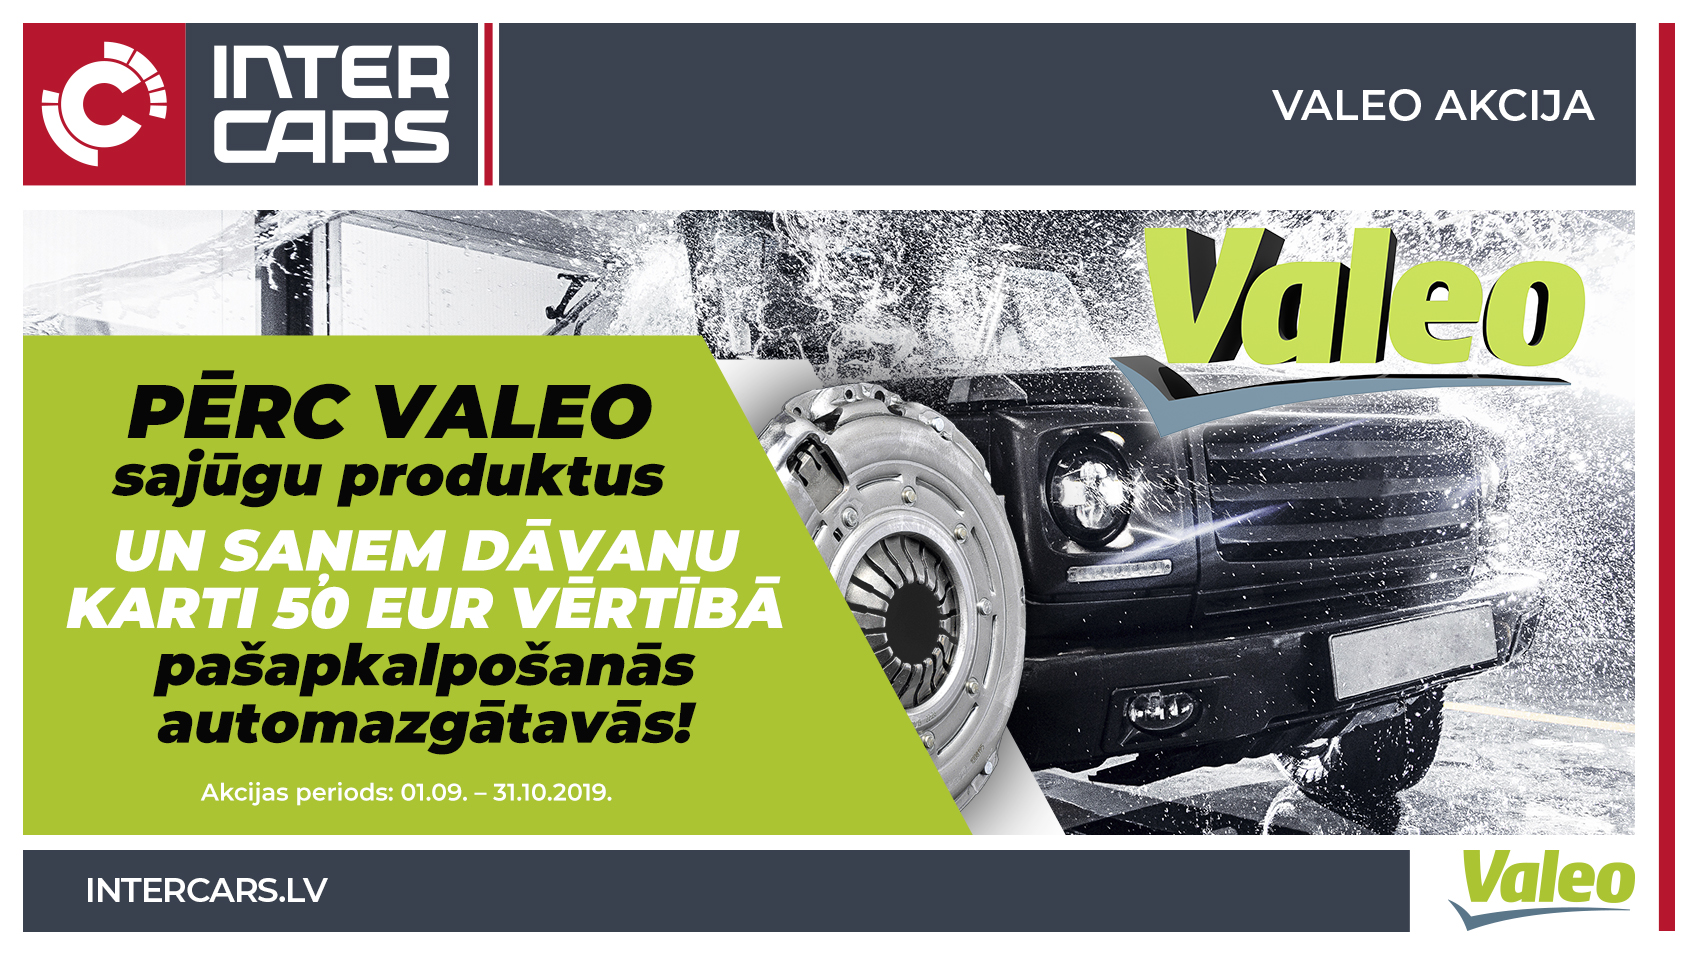 valeo-akcija-sept2019screen.jpg